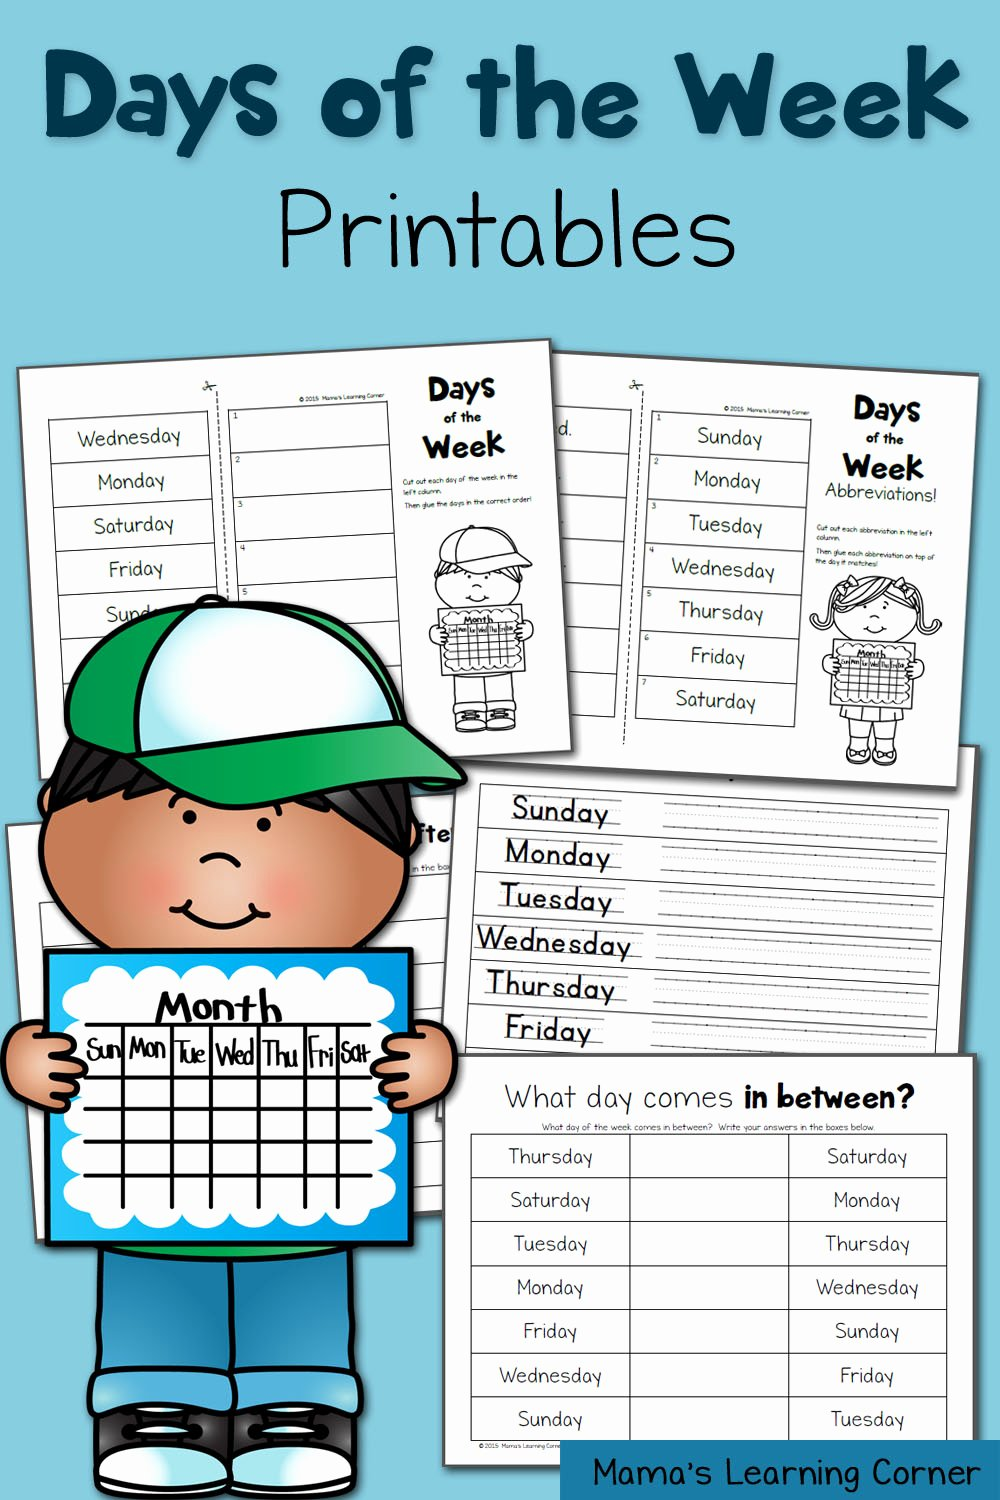 Days Of the Week Worksheets for Preschoolers Free Days Of the Week Worksheets Mamas Learning Corner